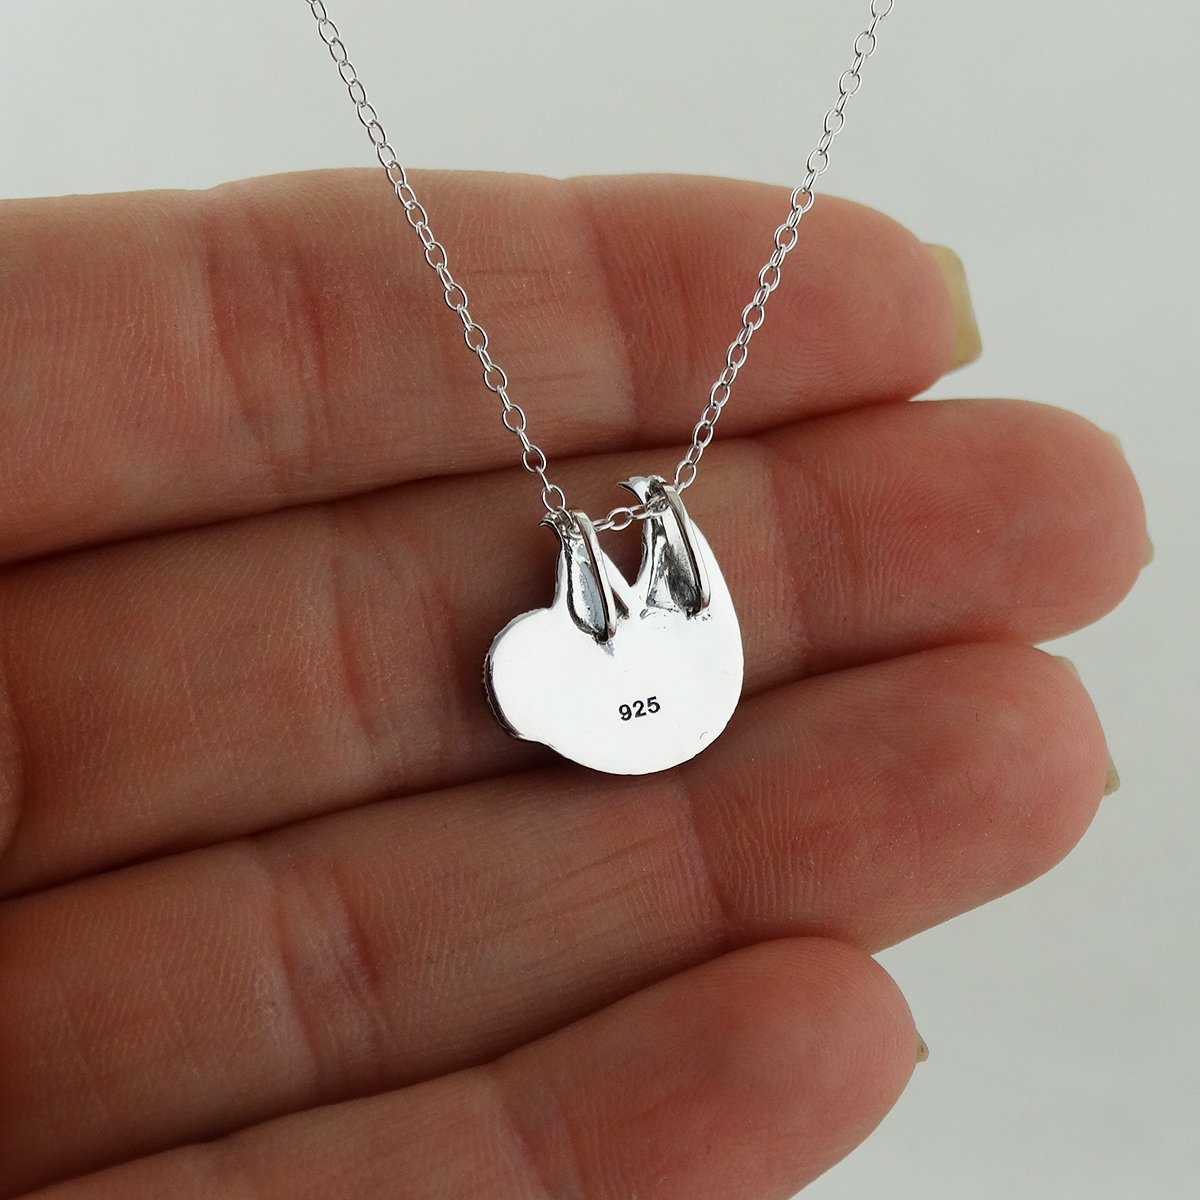 f9f4eba0f05be3 Amazon.com: Sterling Silver Textured Sloth Slider Pendant Necklace, 18